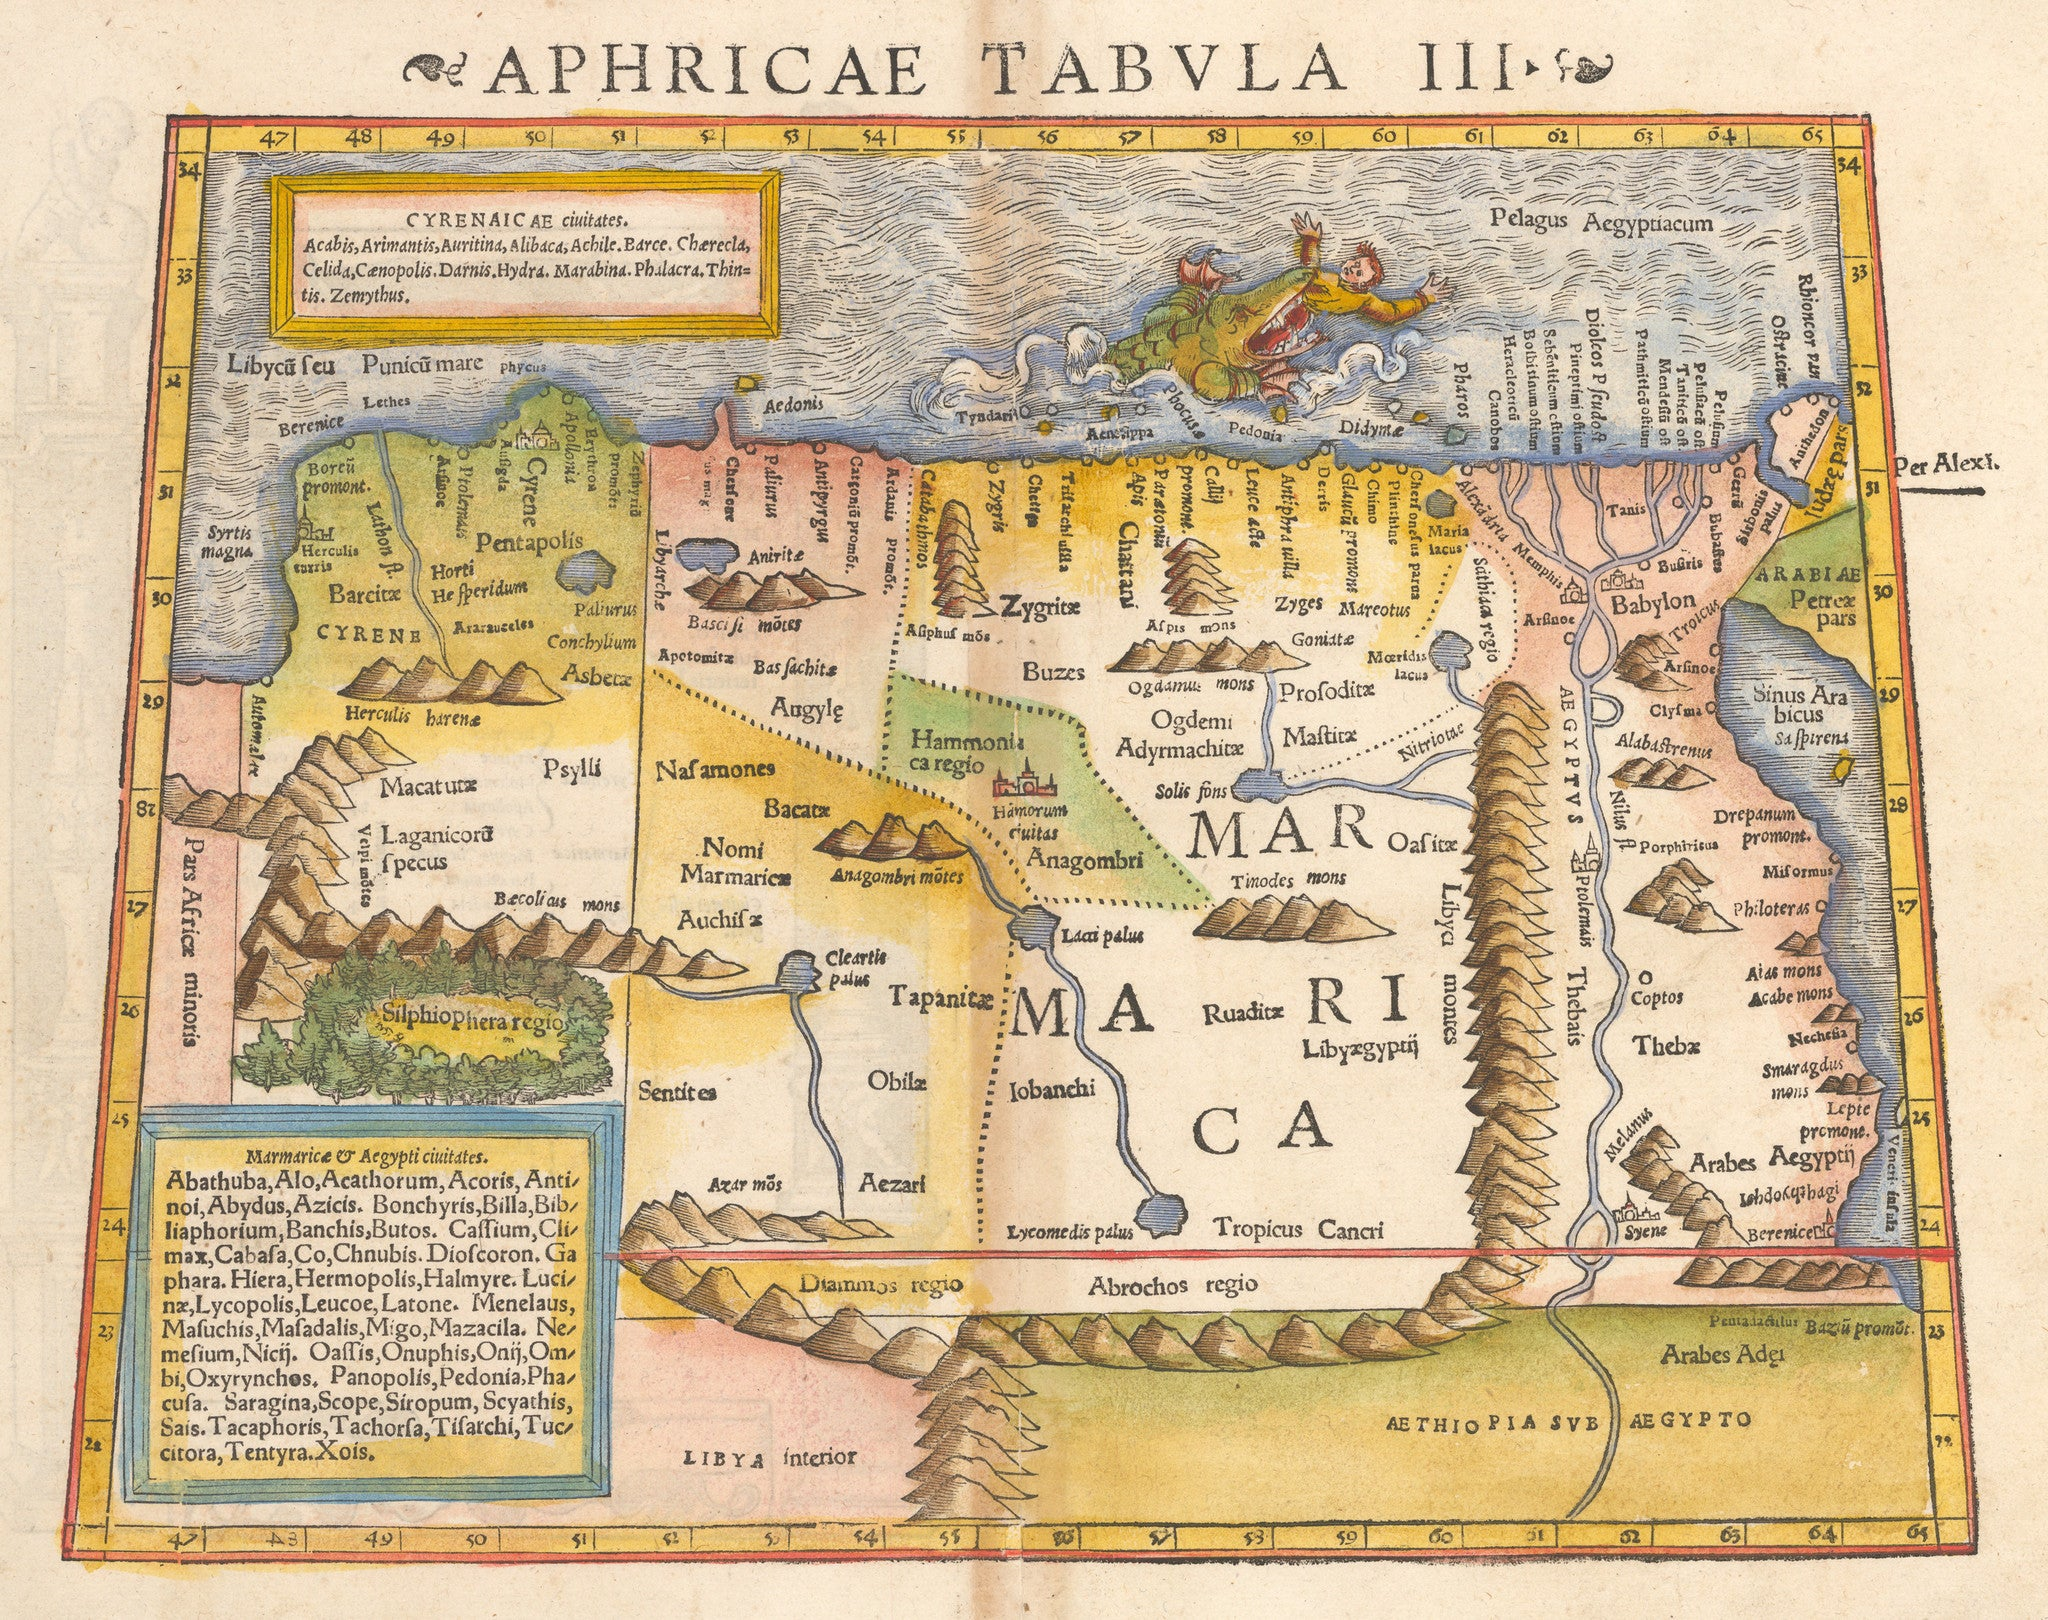 Aphricae Tabula III Antique map of northern Africa By: Sebastian Munster 1550 - nwcartographic.com